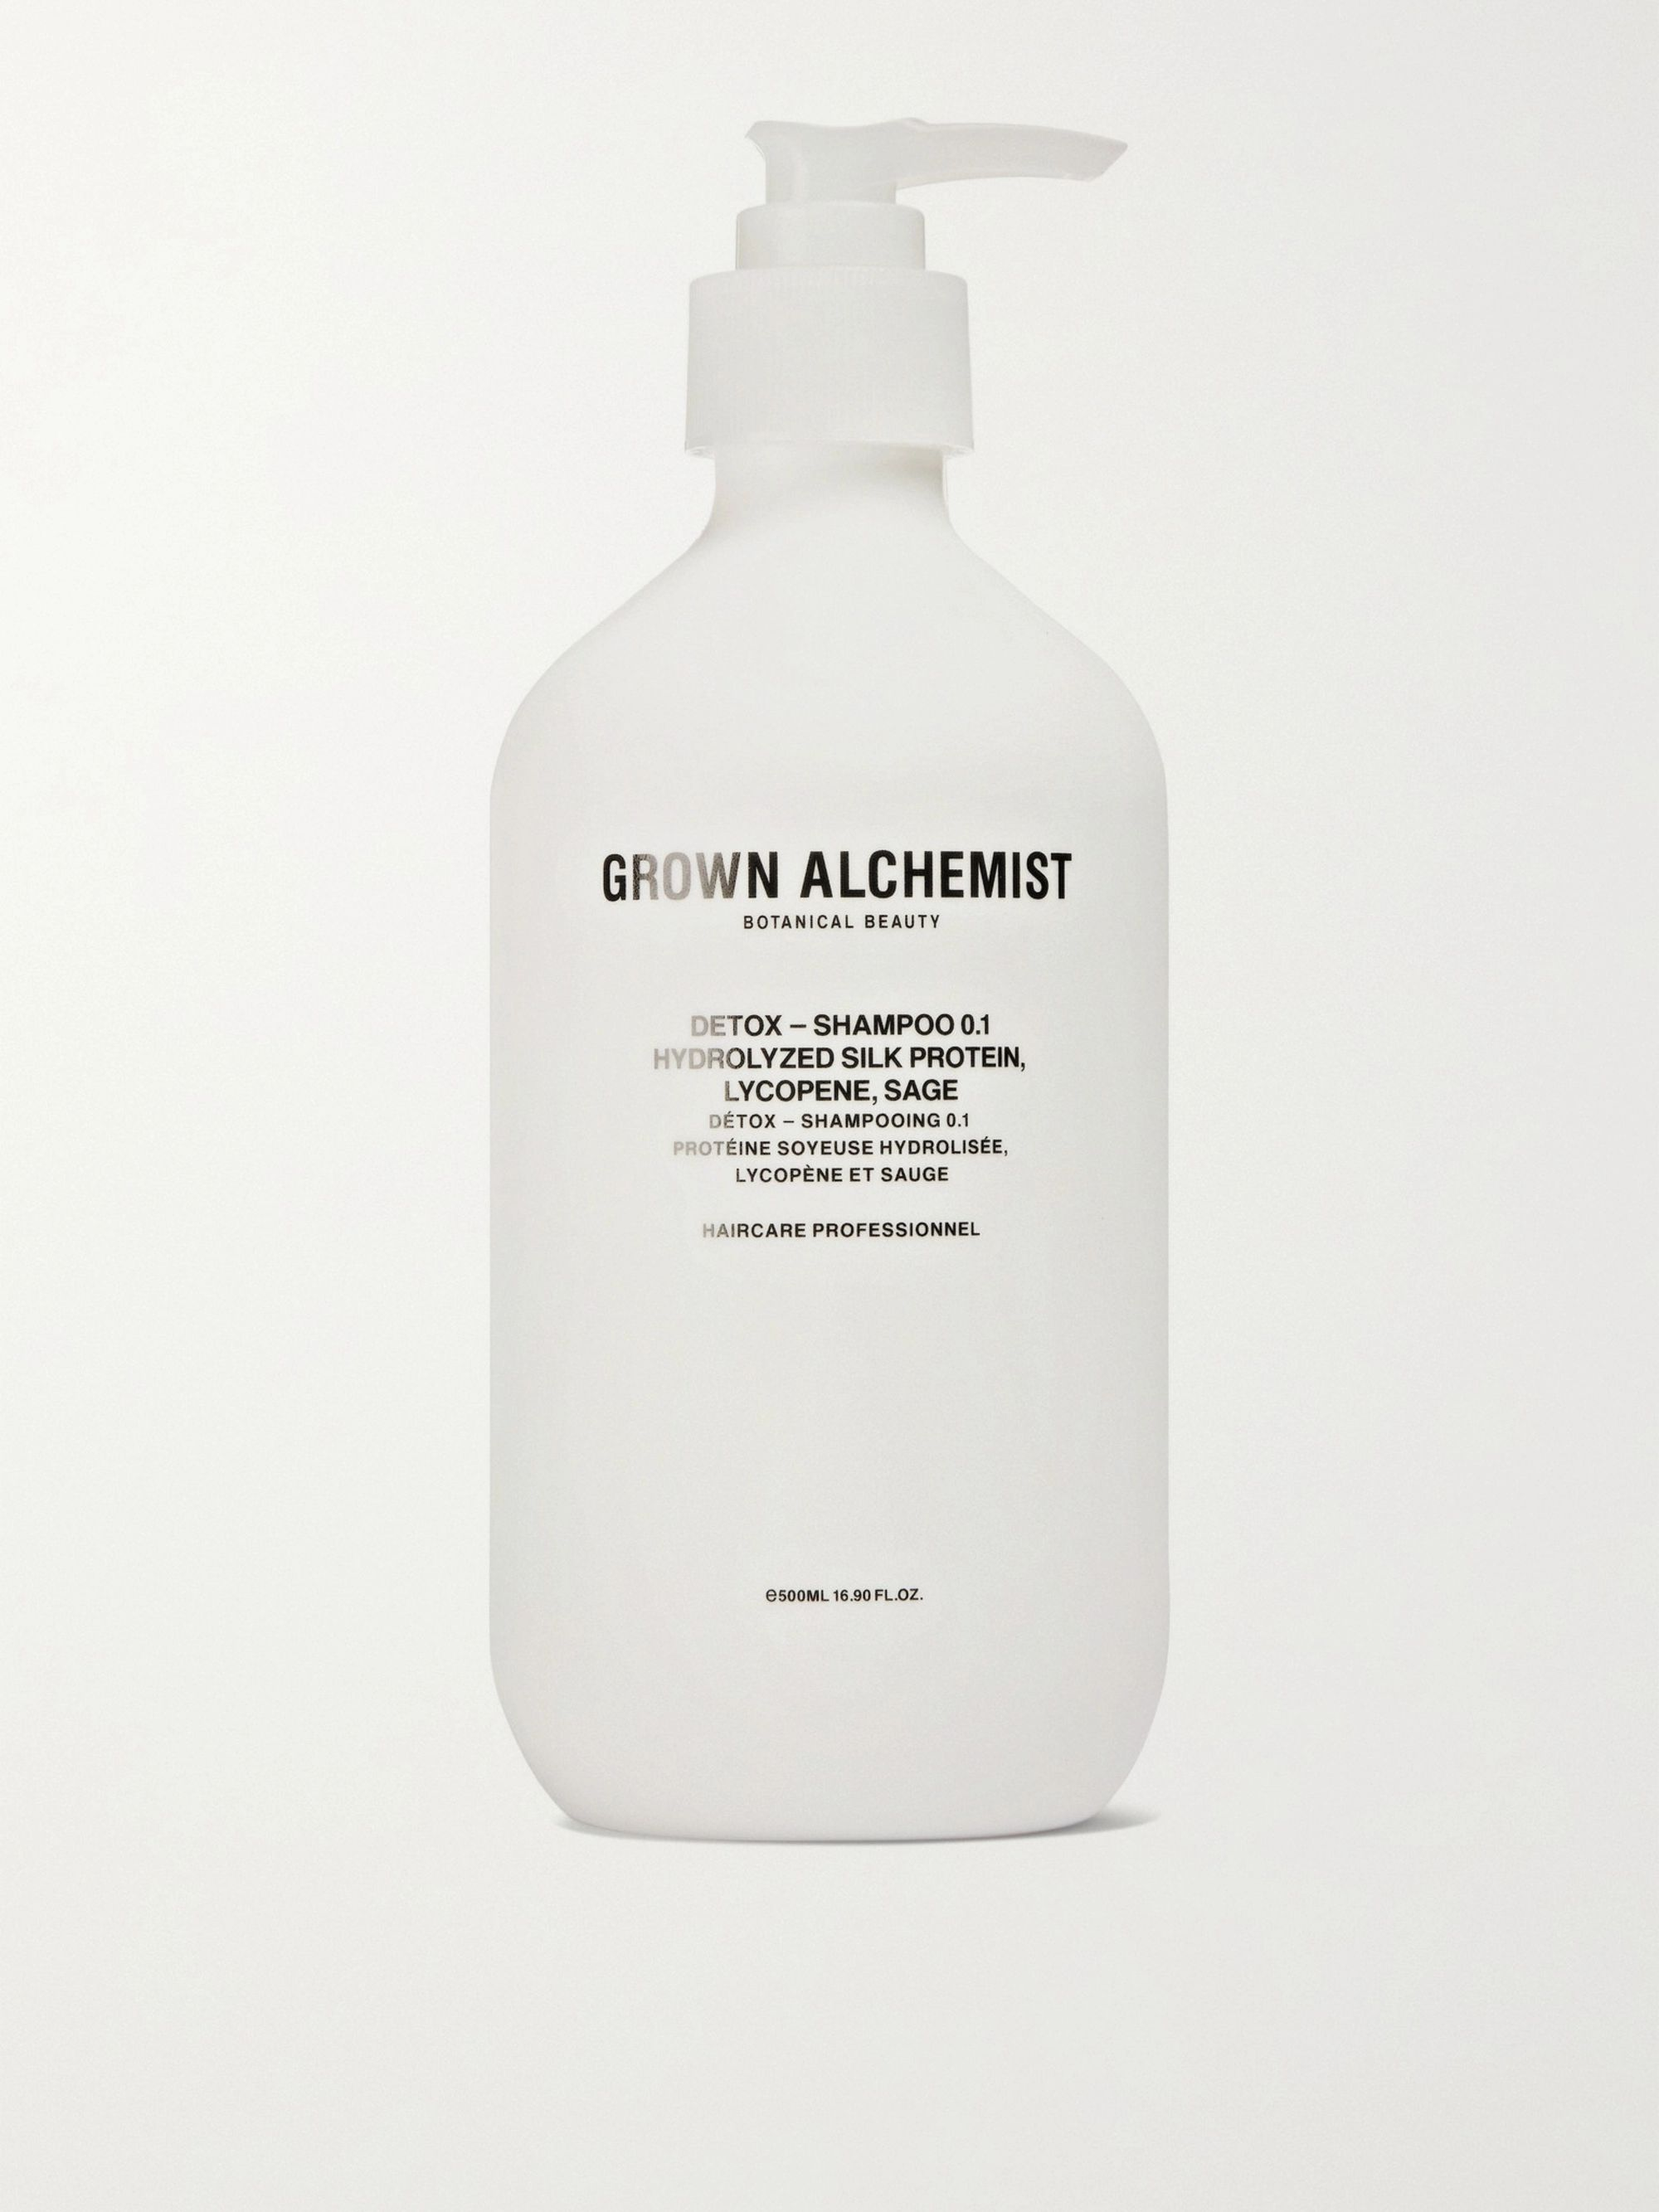 GROWN ALCHEMIST Detox Shampoo 0.1 - Hydrolysed Silk Protein, Black Pepper & Sage, 500ml